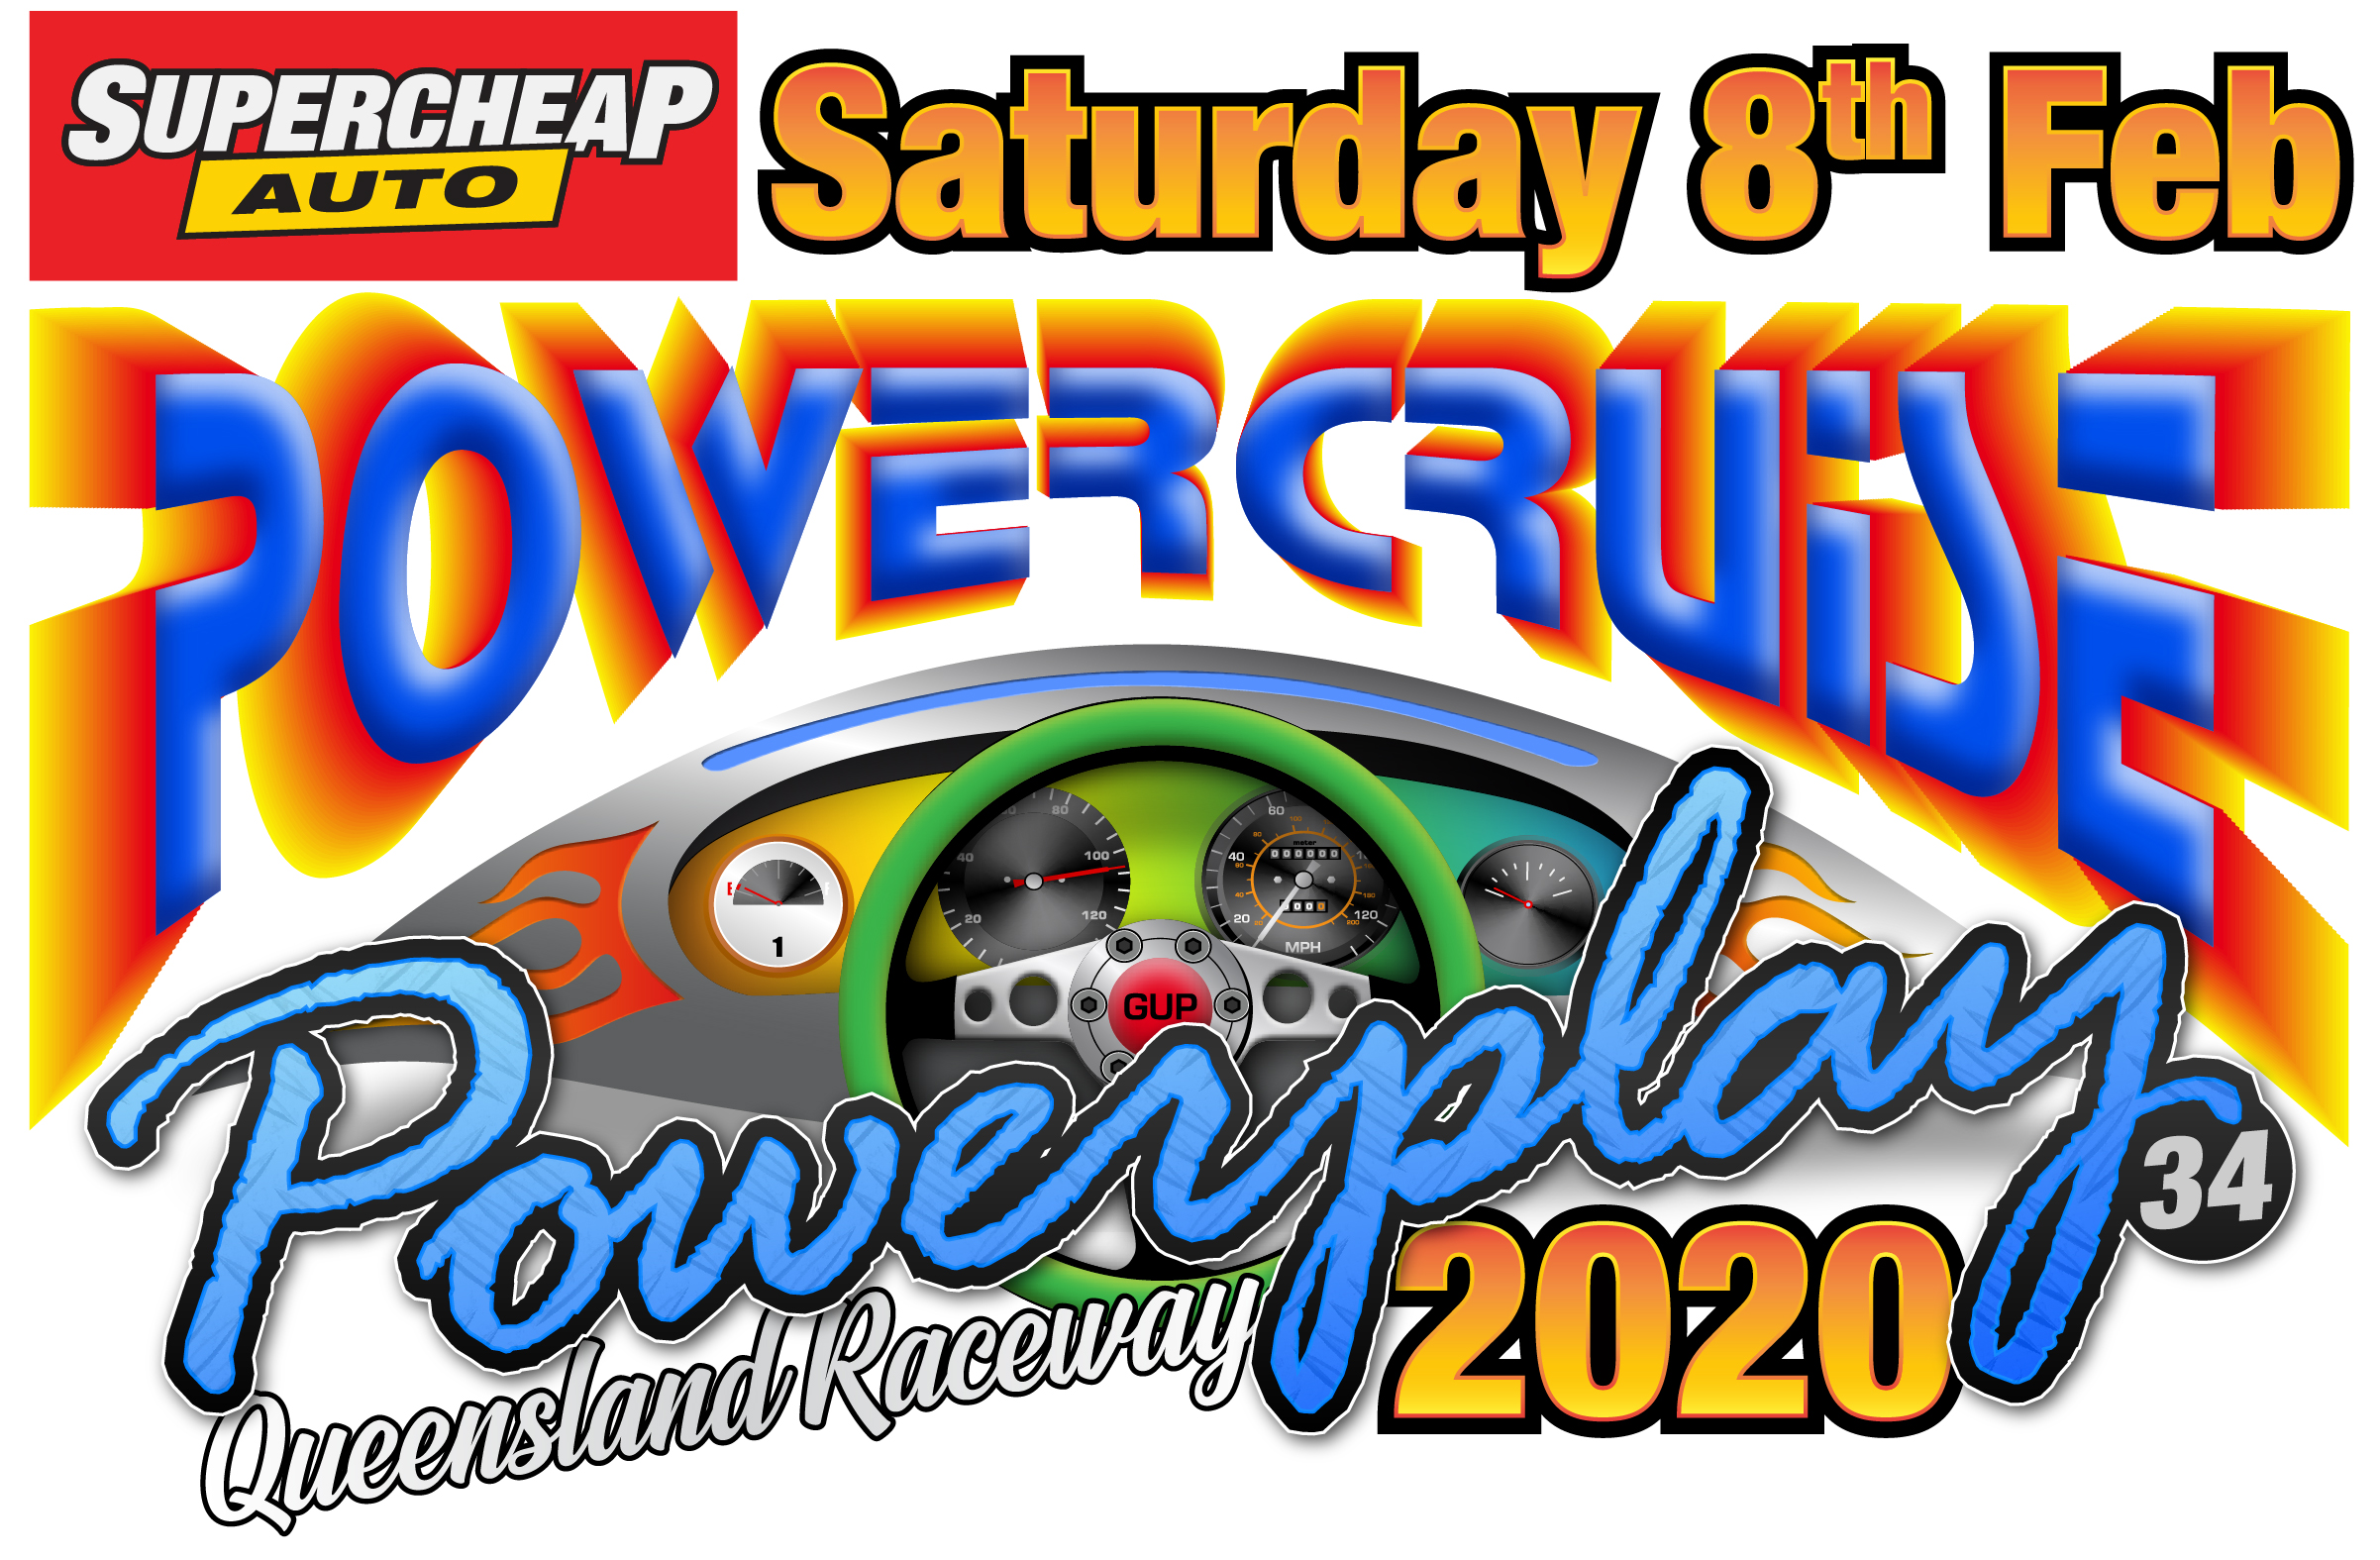 Powercruise qld